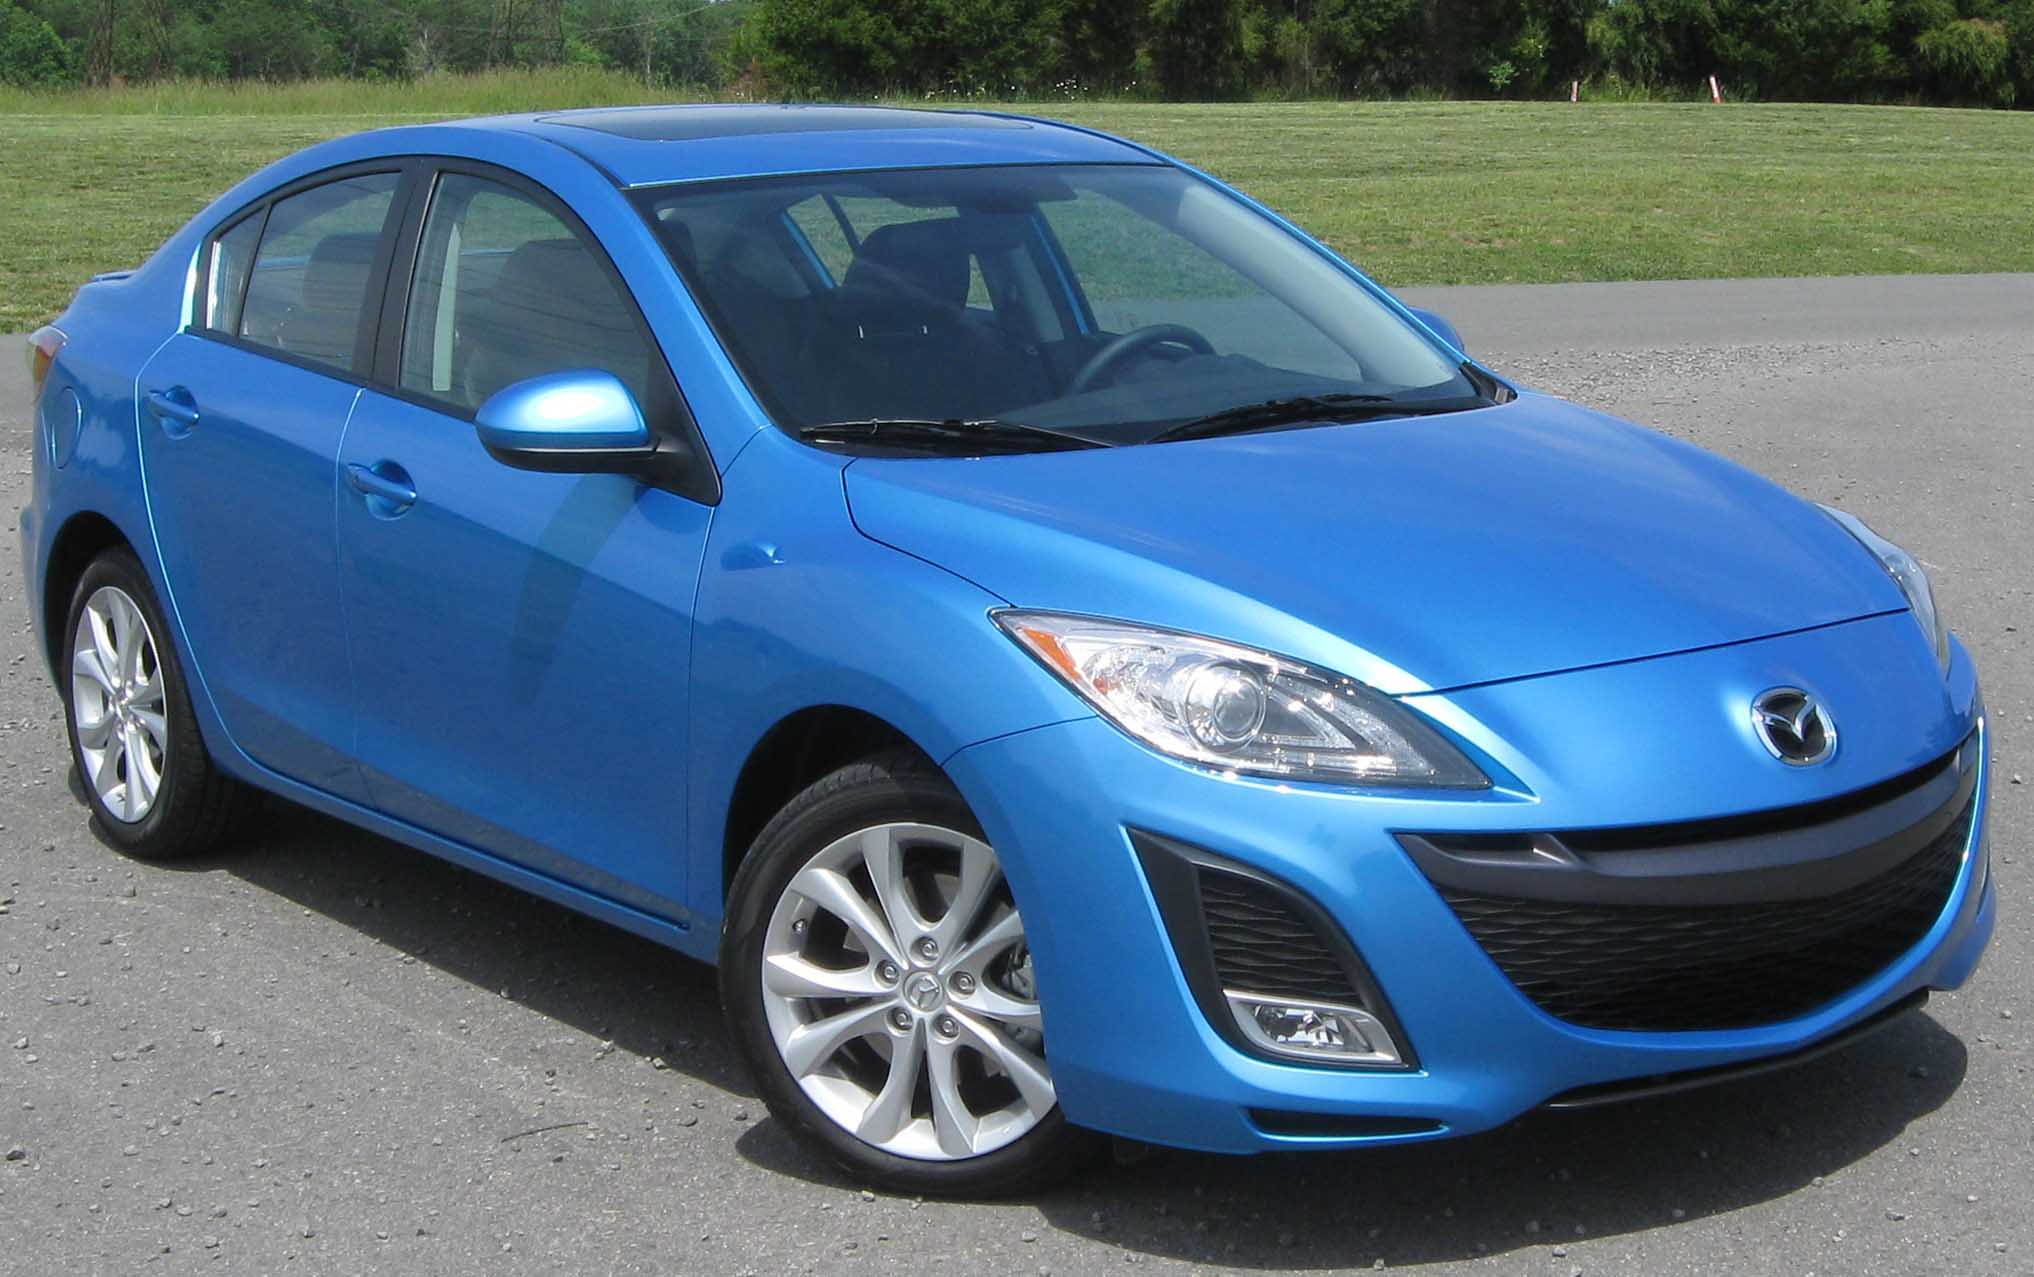 MAZDA 3 Review and photos